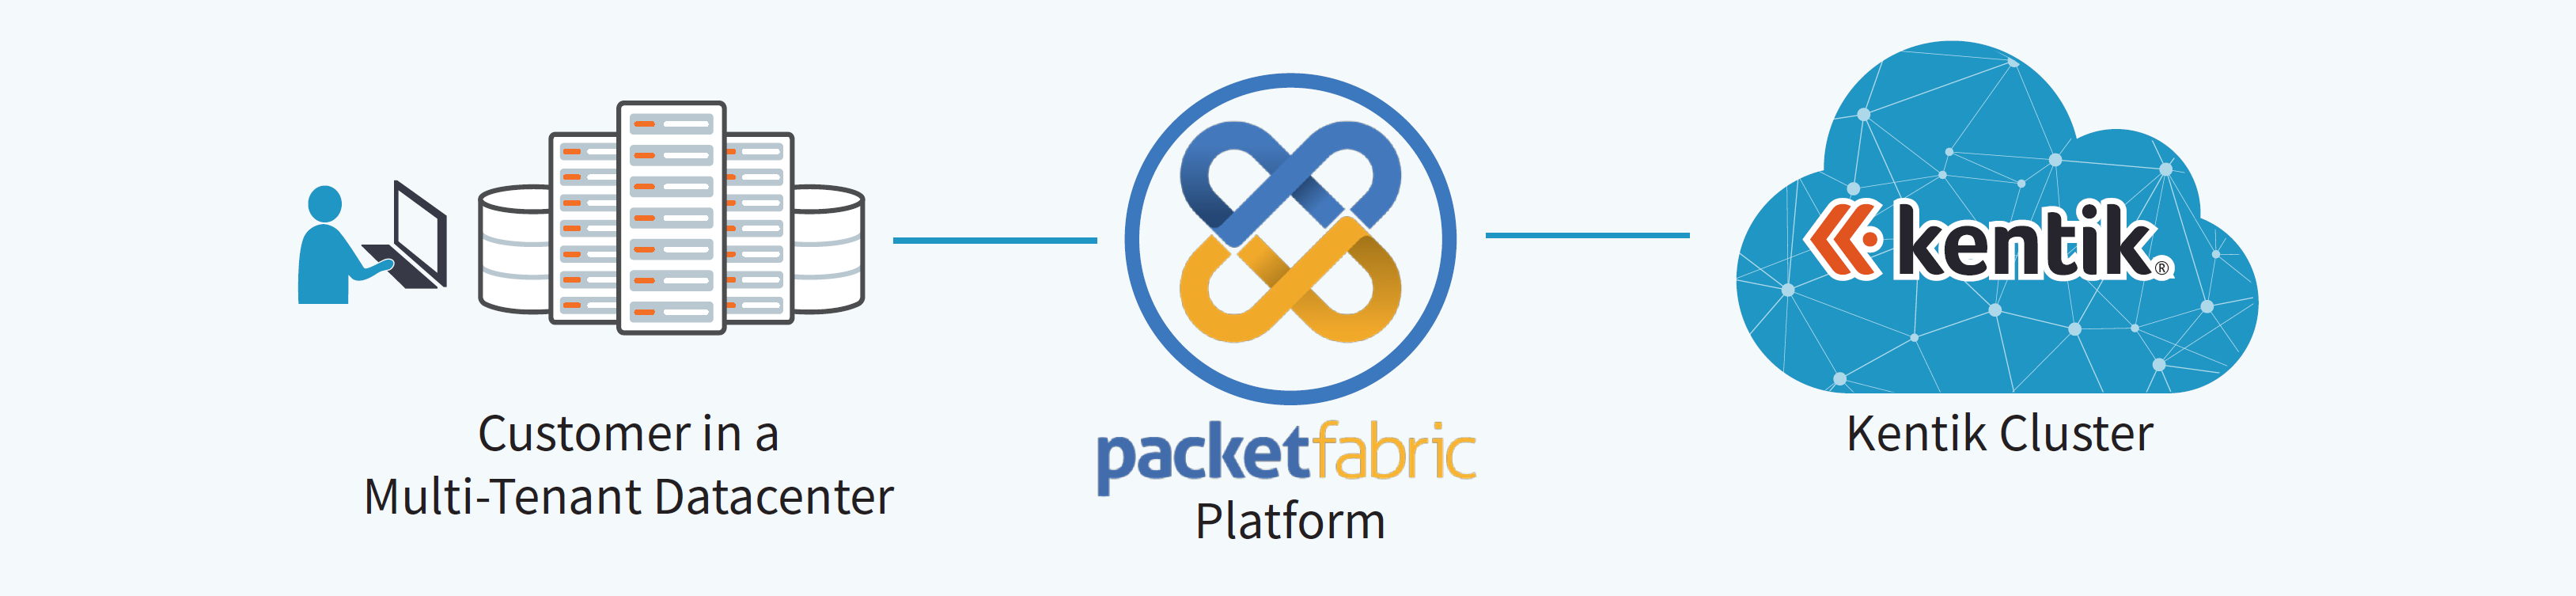 PacketFabric Virtual Peering for Kentik Diagram